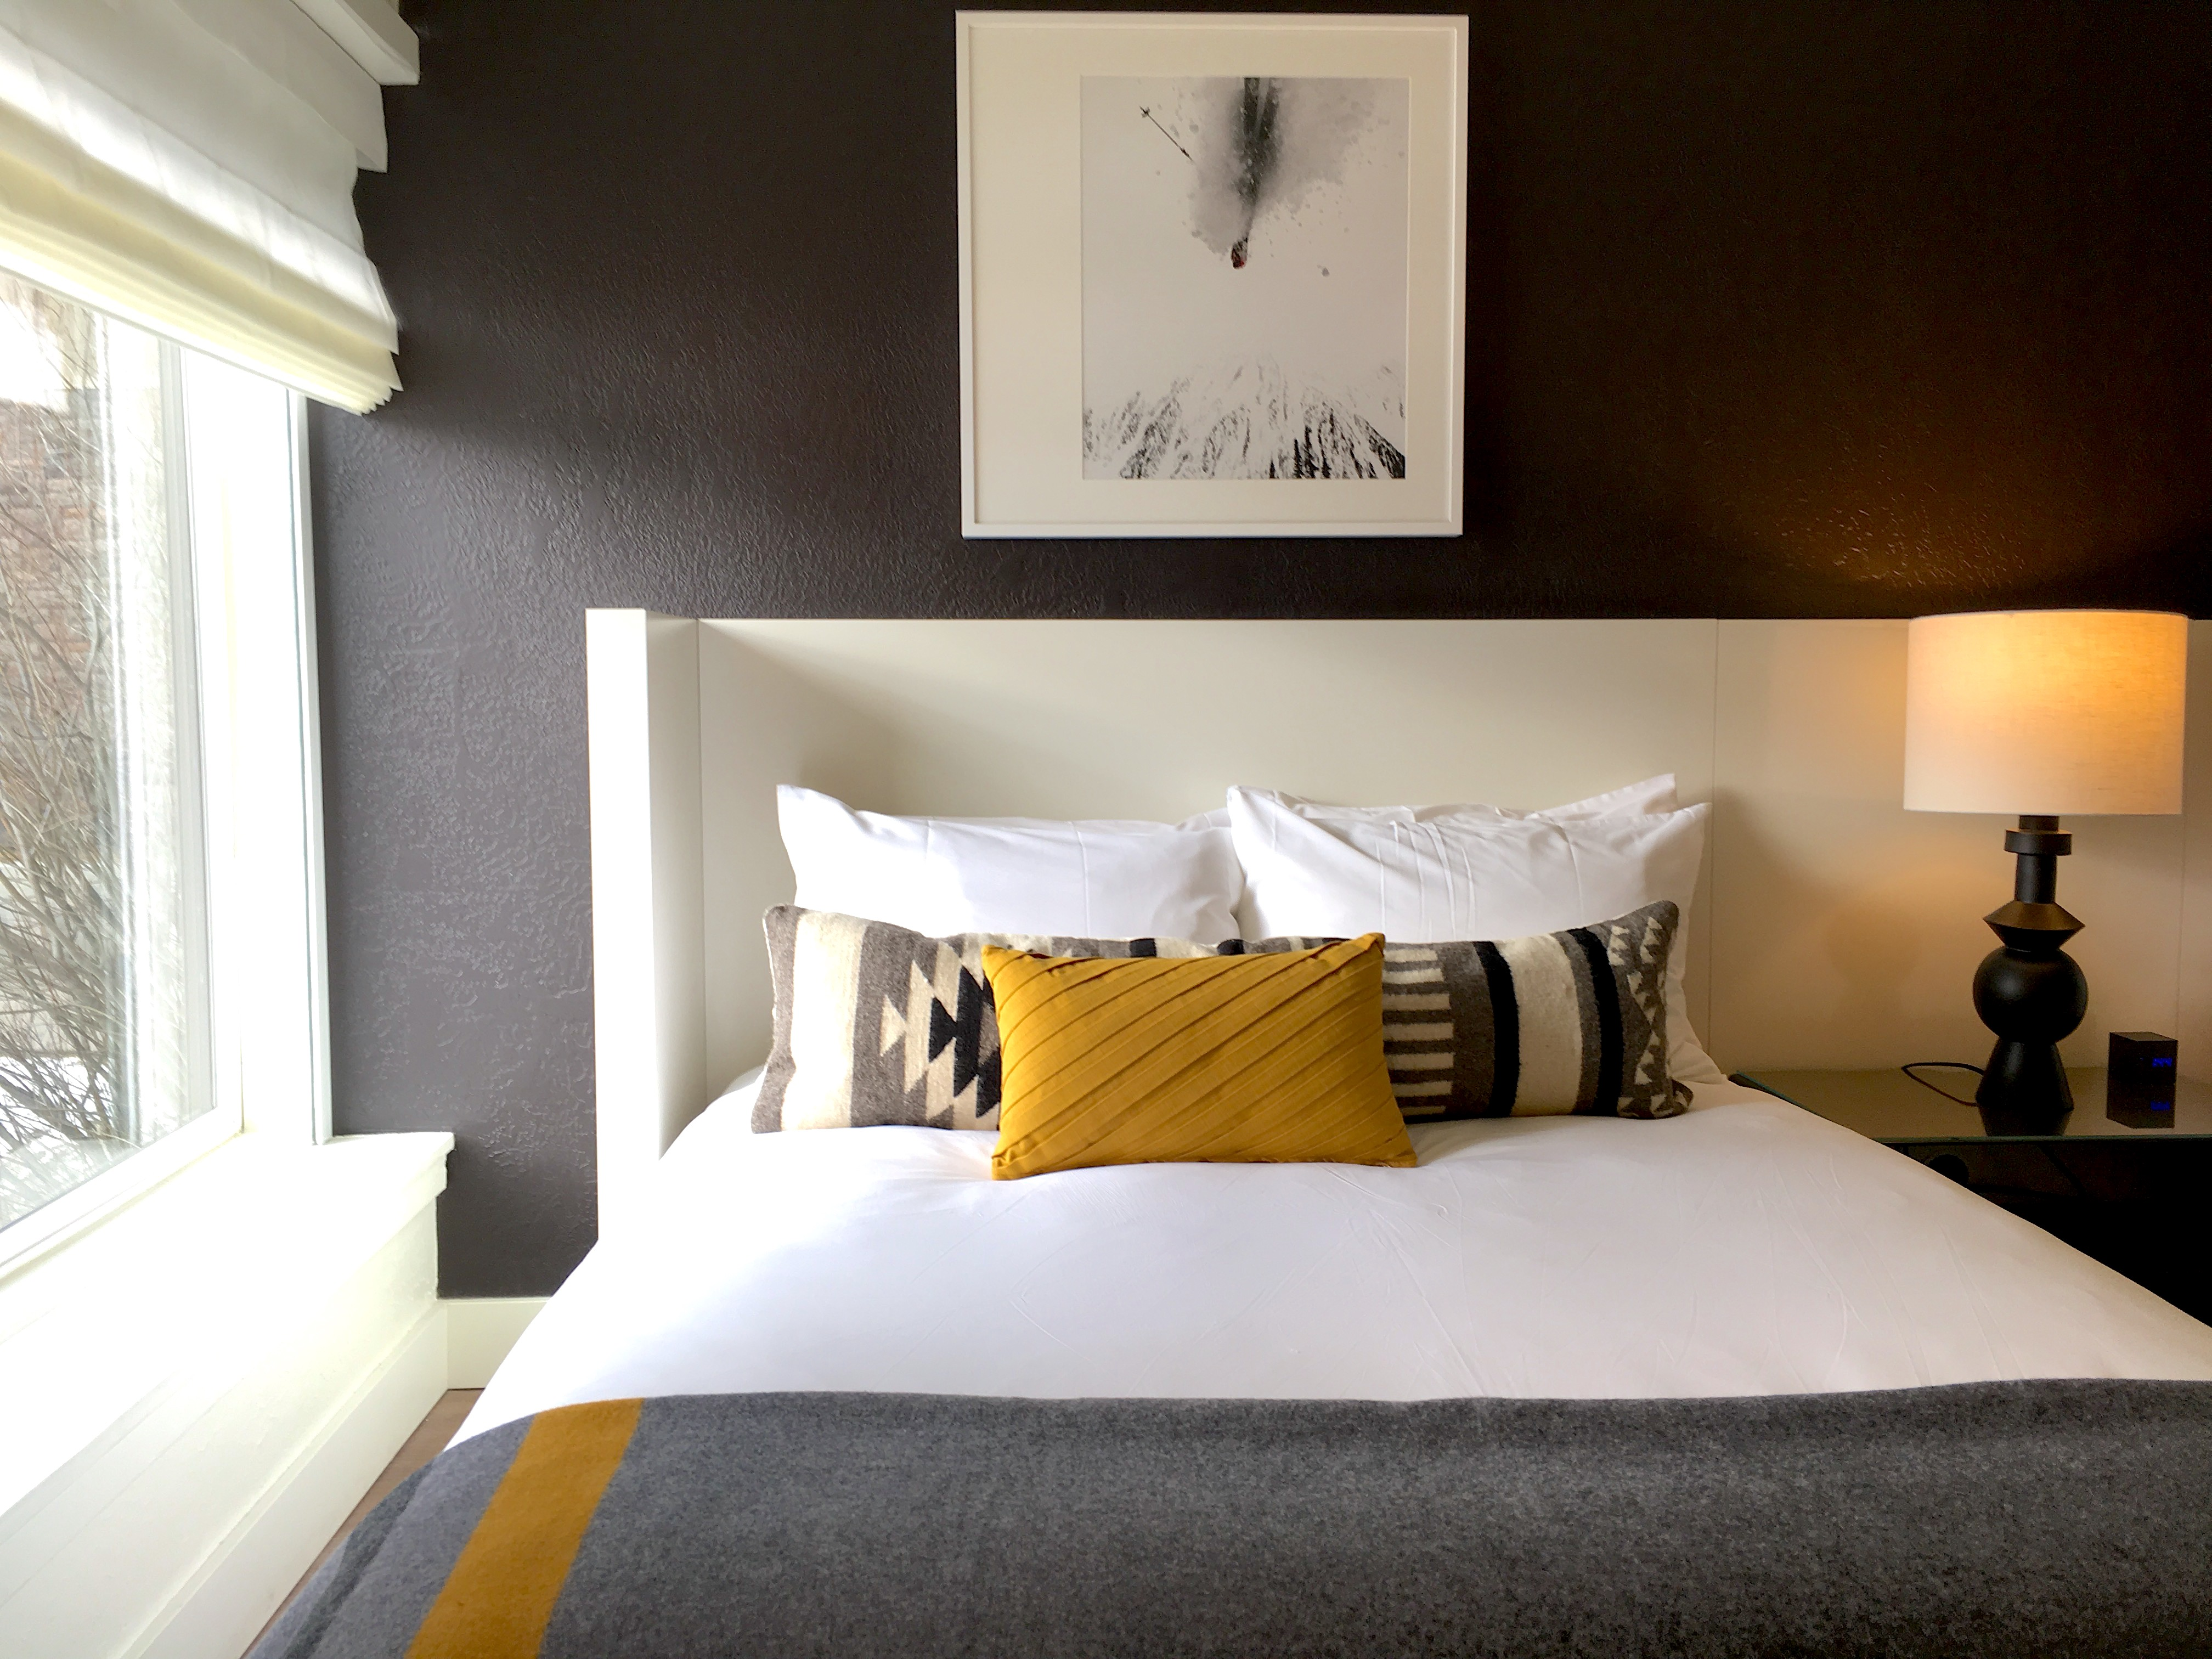 Continuum Hotel by Teton Gravity Research in Jackson Hole, Wyoming and Teton Village. Queen Room